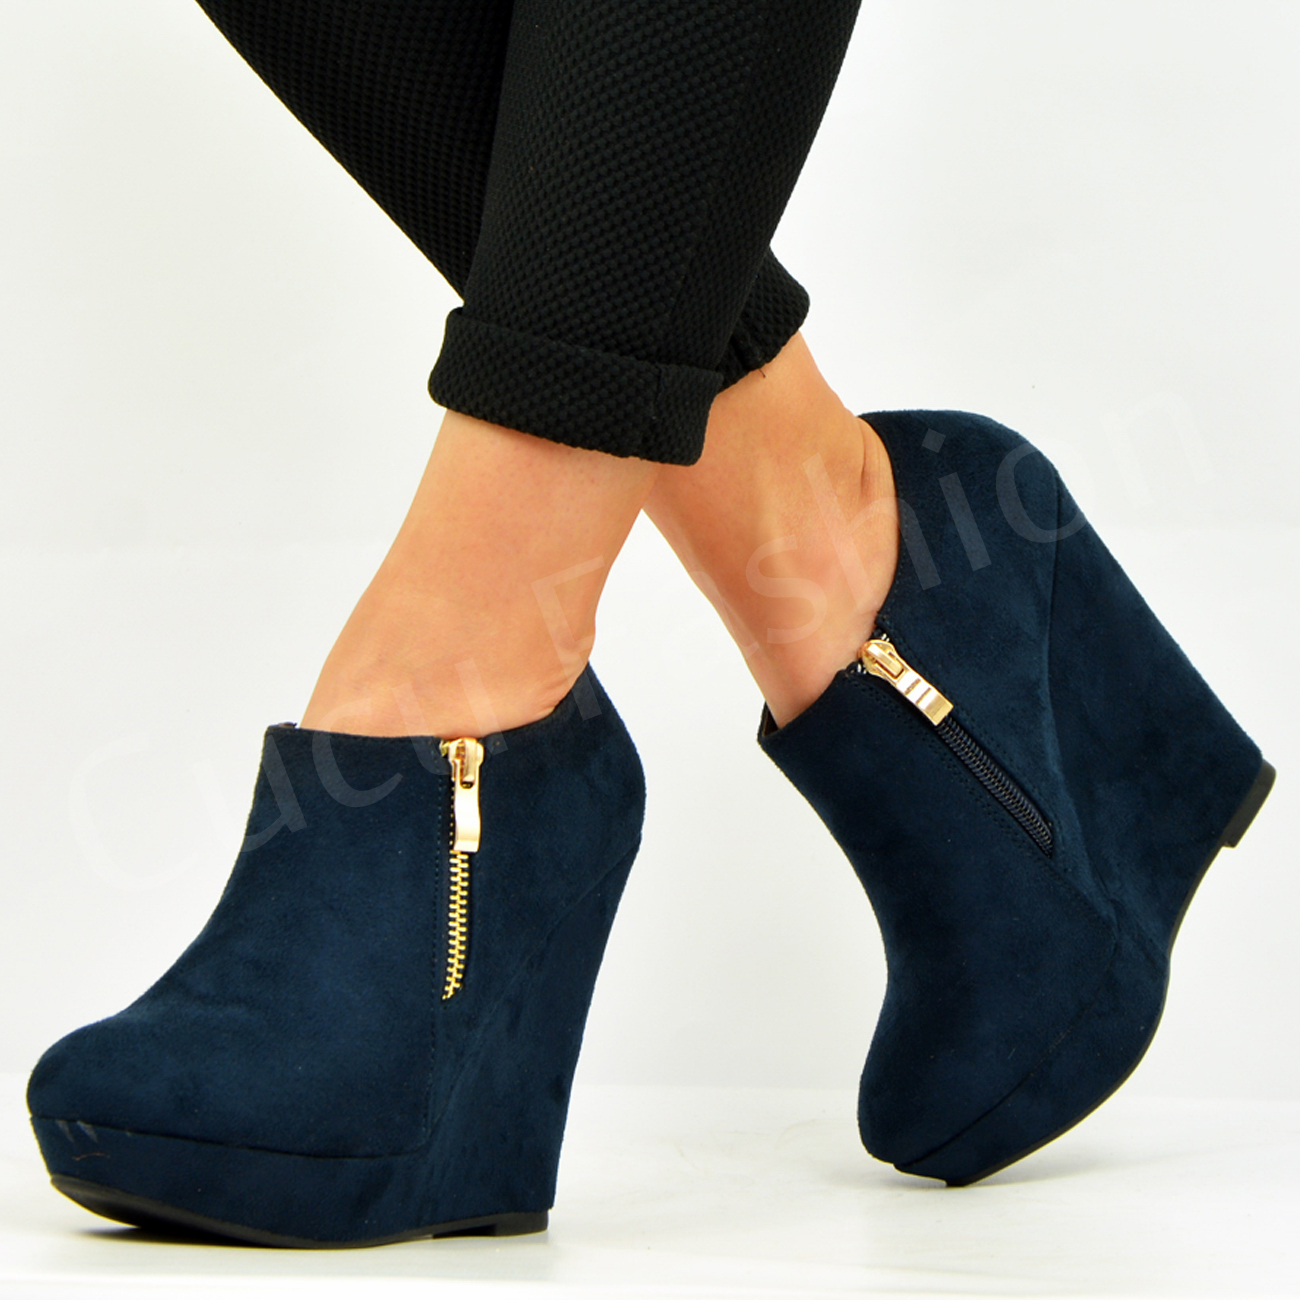 New Womens Ankle Boots Ladies Wedge Platforms Side Zip ...